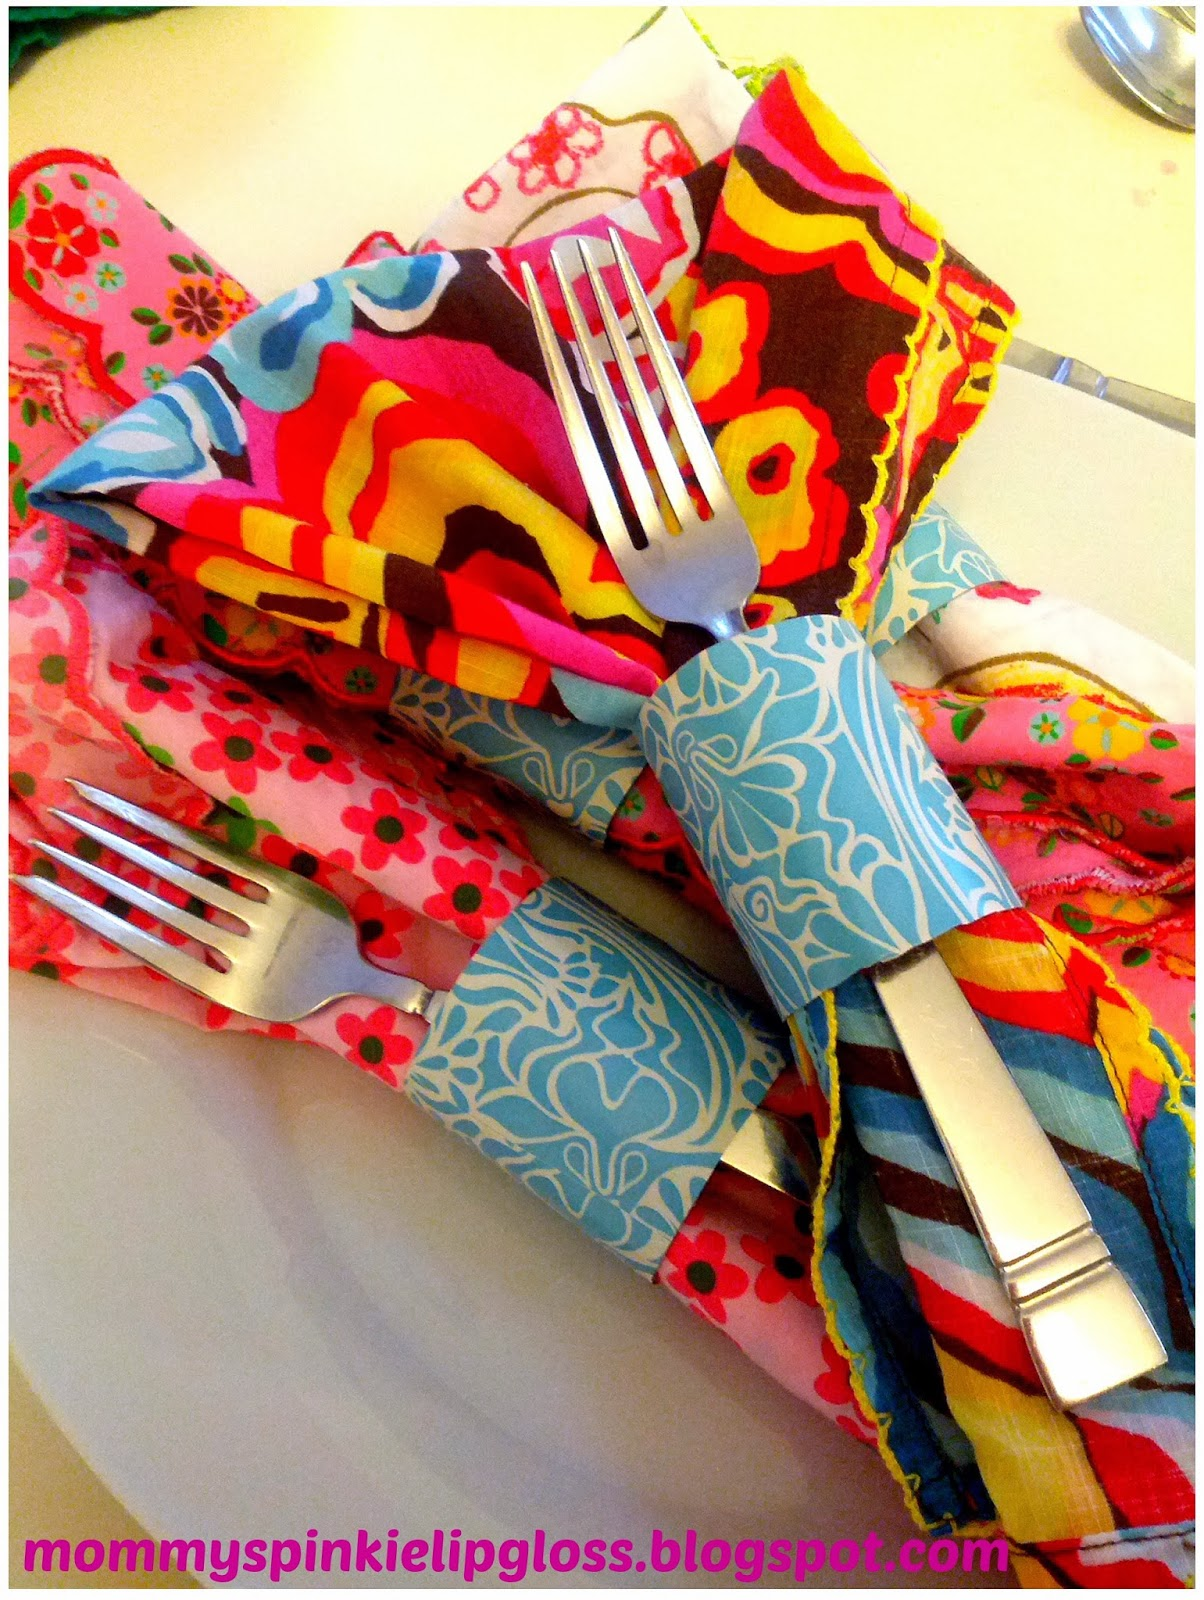 Napkin rings diy, recycled crafts, toilet paper roll craft